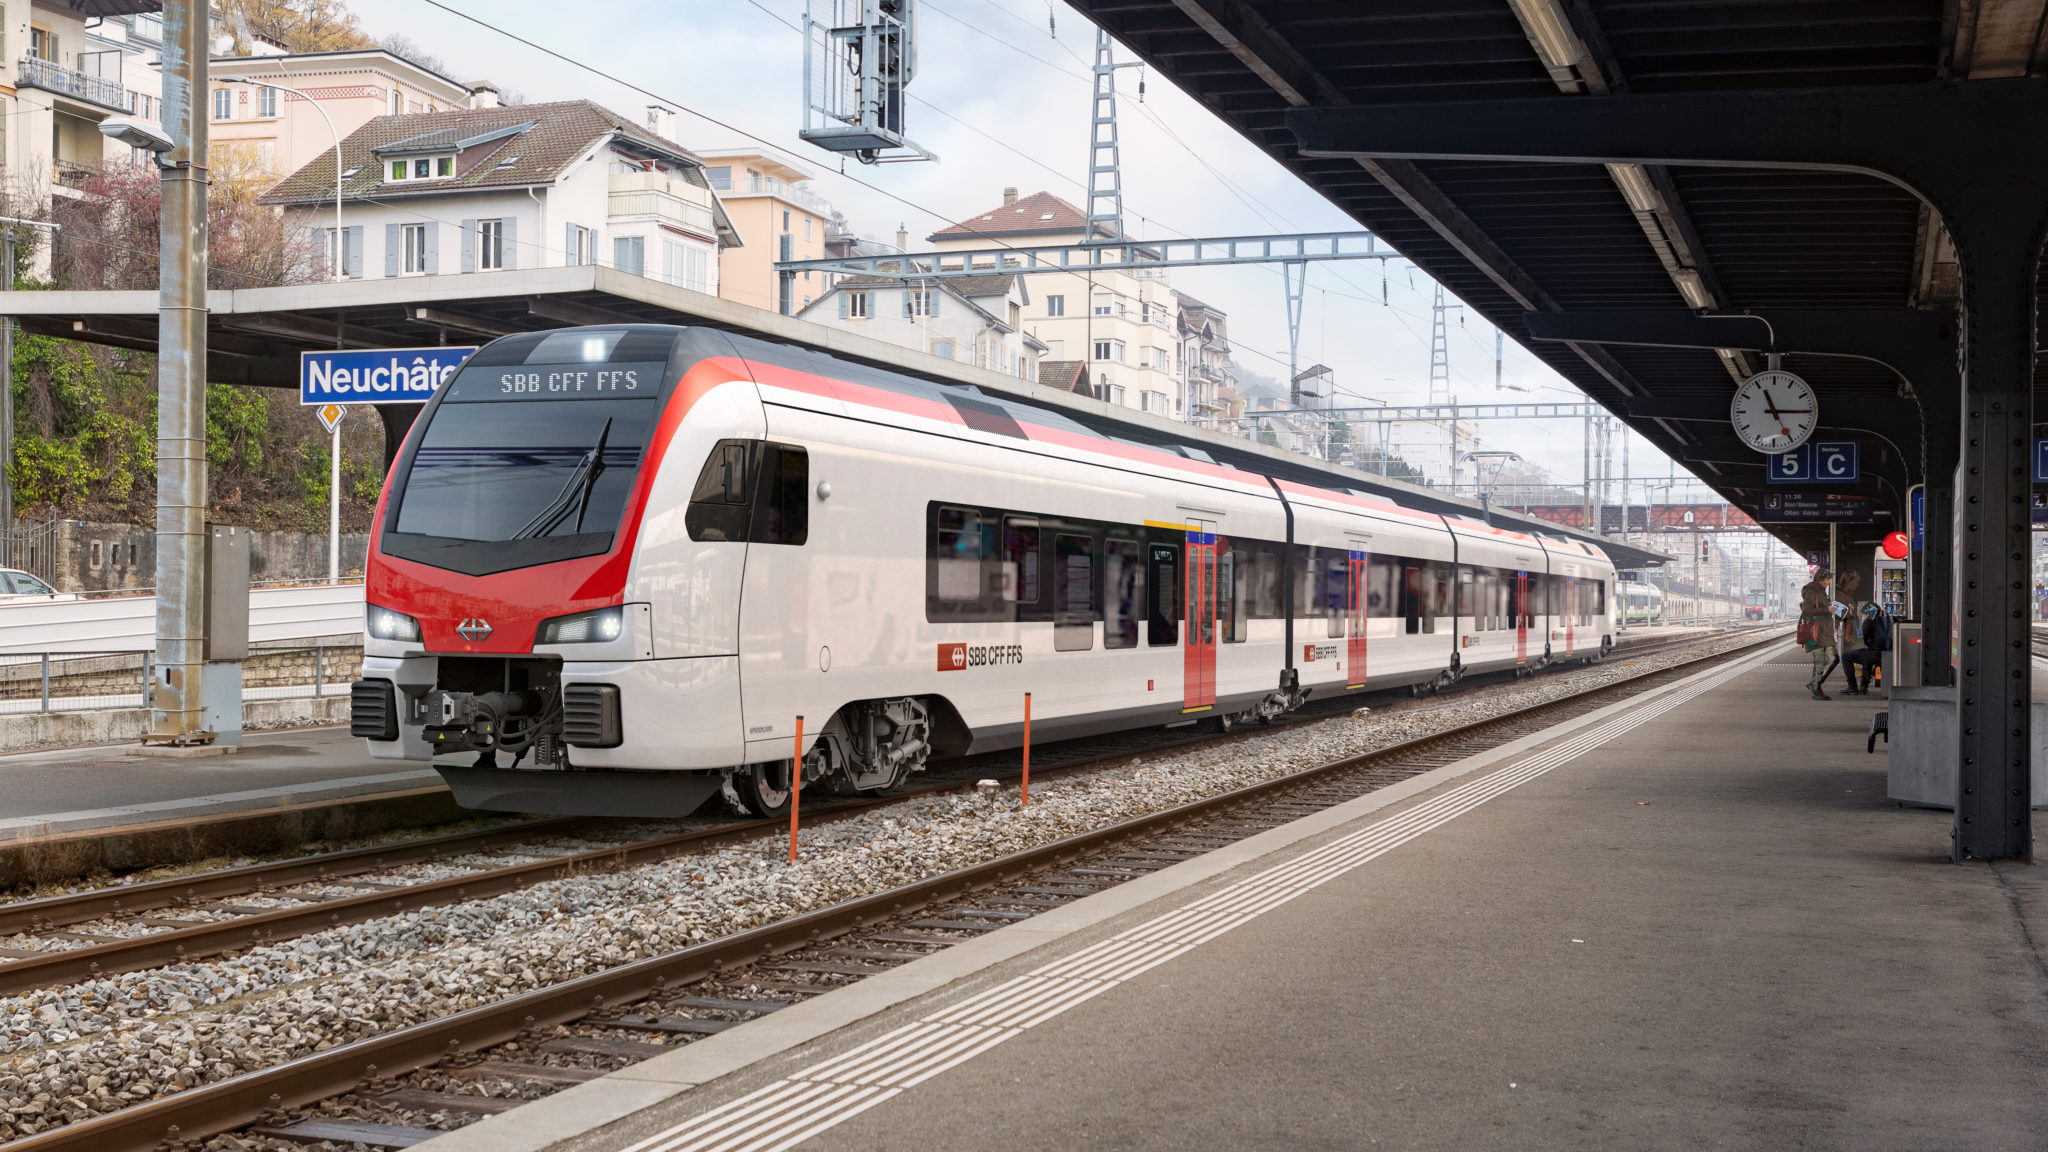 One of the Stadler 'Mouette' FLIRT Trains for SBB